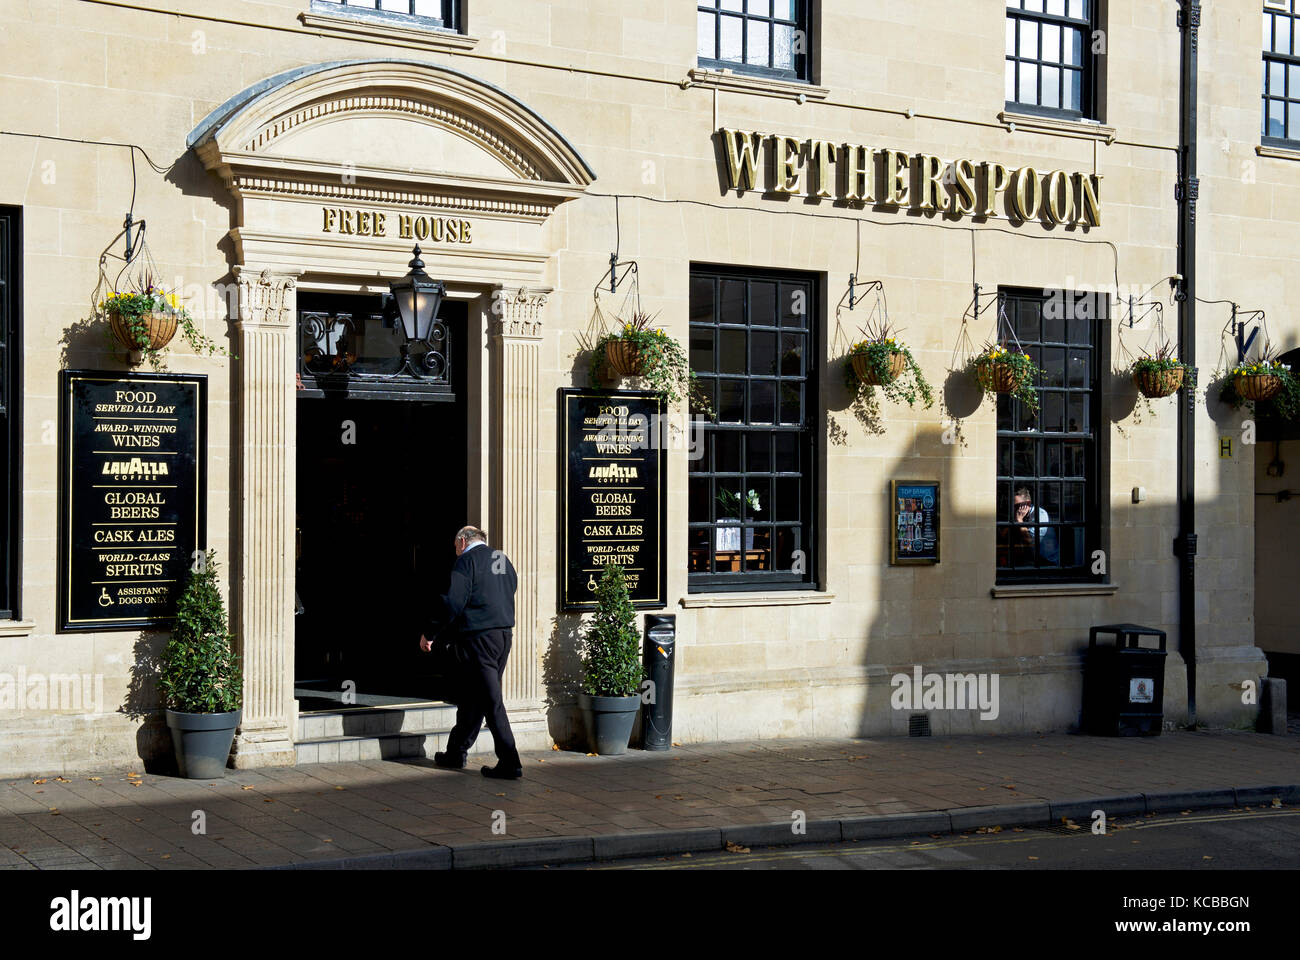 The Exchange, a Wetherspoons pub in Banbury, Oxfordshire, England UK - Stock Image